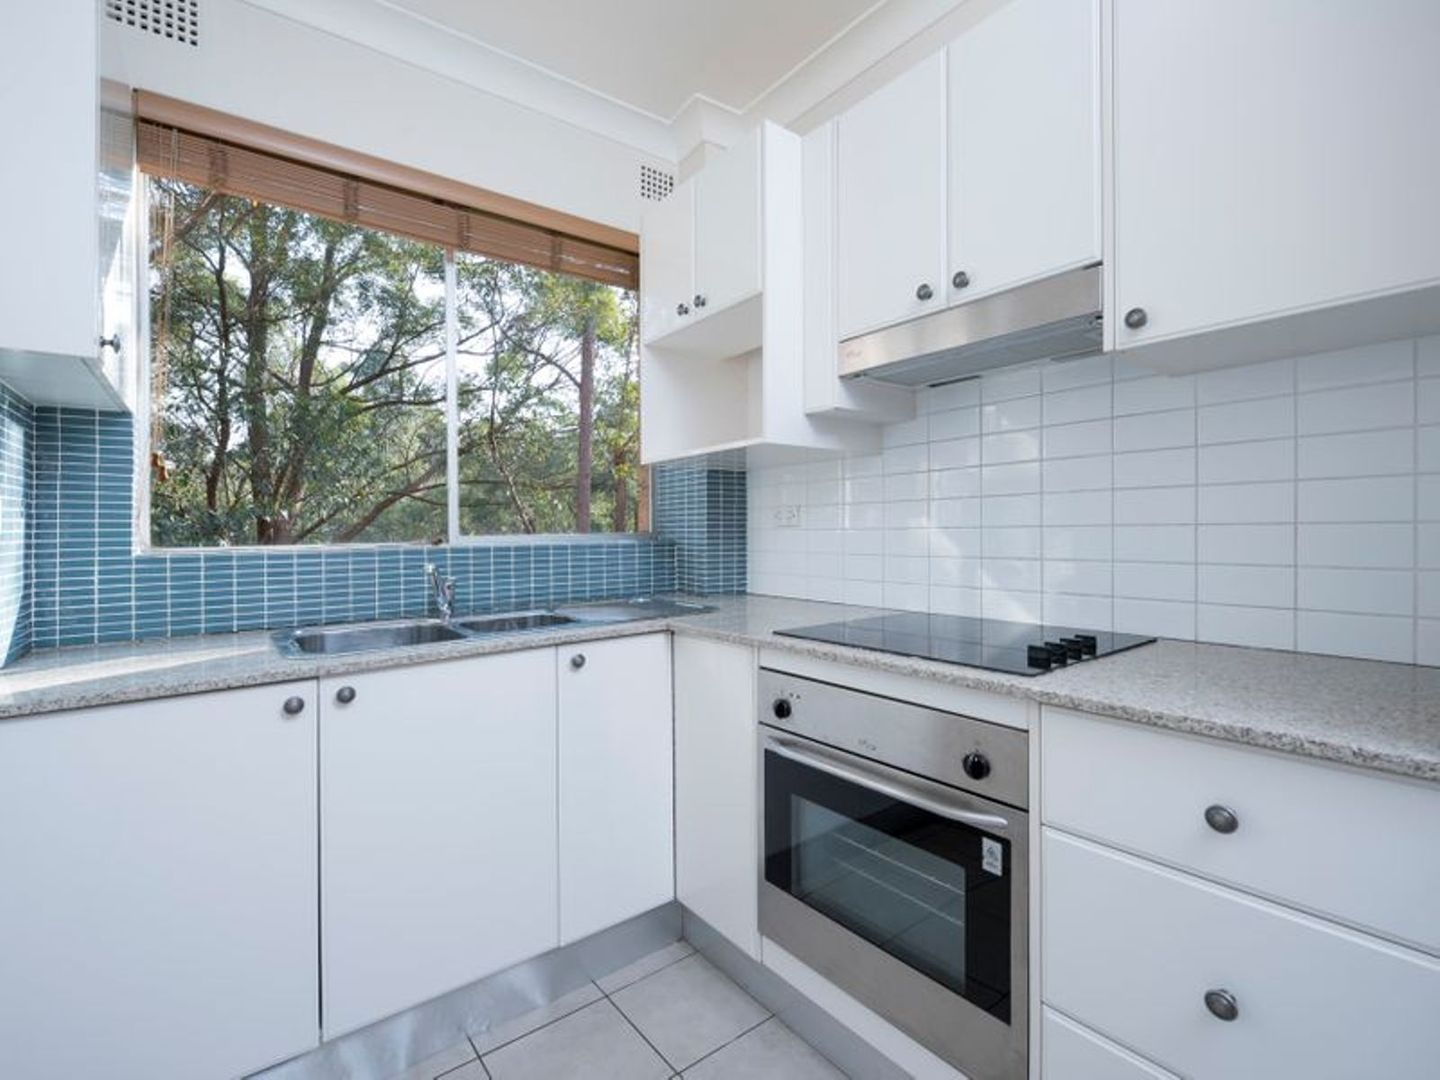 20/5 Leisure Close, Macquarie Park NSW 2113, Image 1